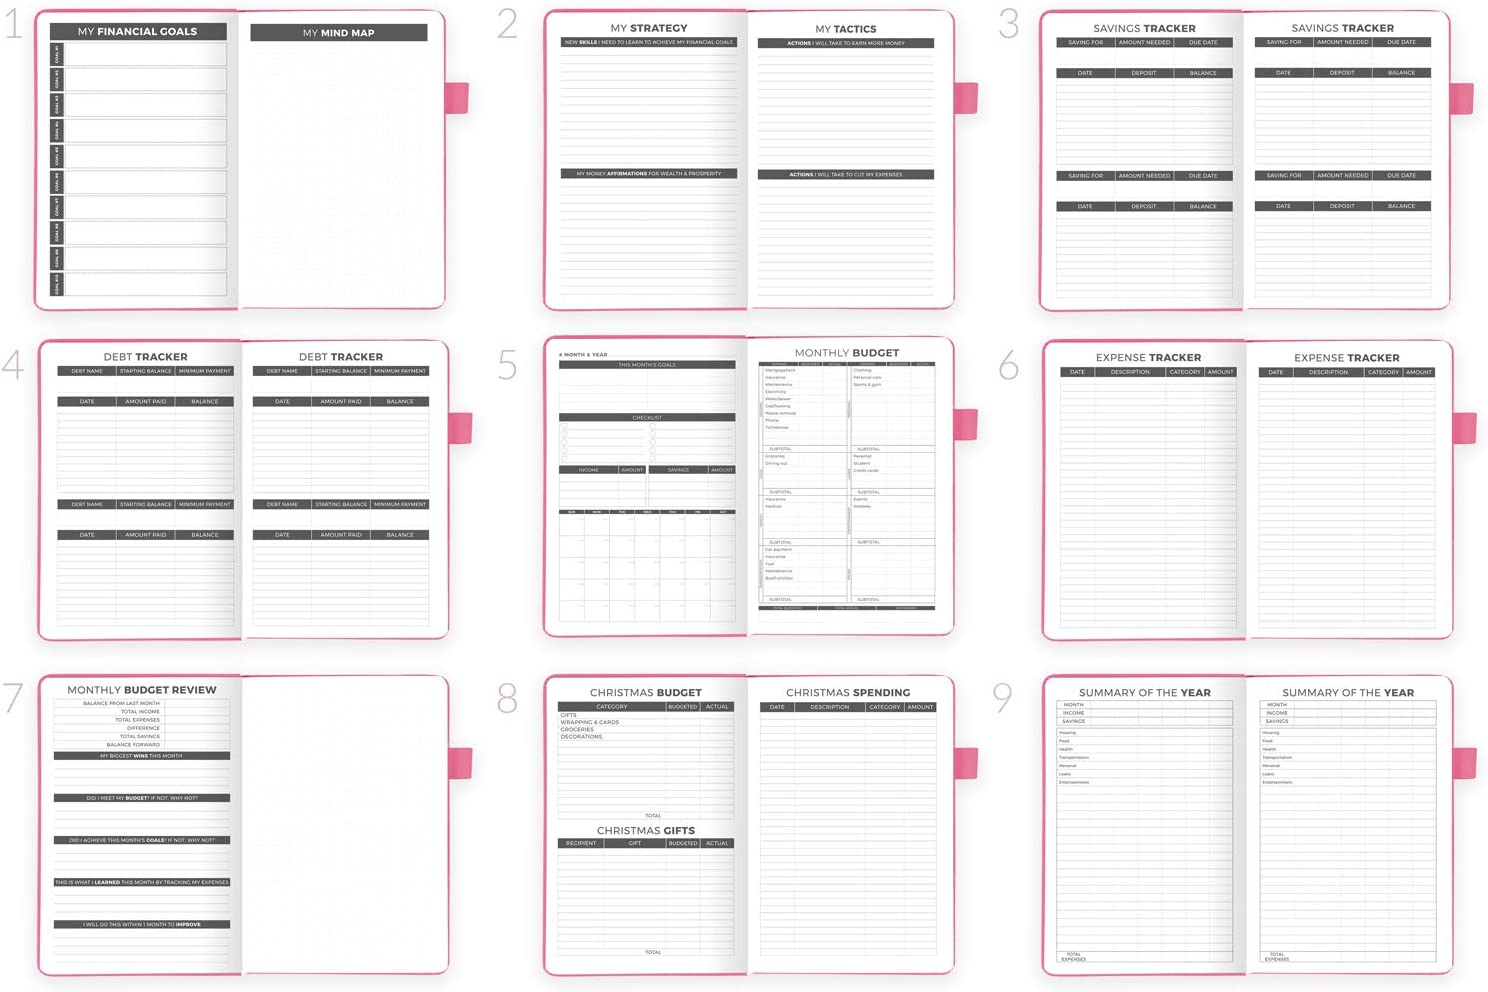 A5 Size Start Anytime Undated Expense Tracker Notebook Monthly Budgeting Journal Peach Pink Hardcover Clever Fox Budget Planner Finance Planner /& Accounts Book to Take Control of Your Money